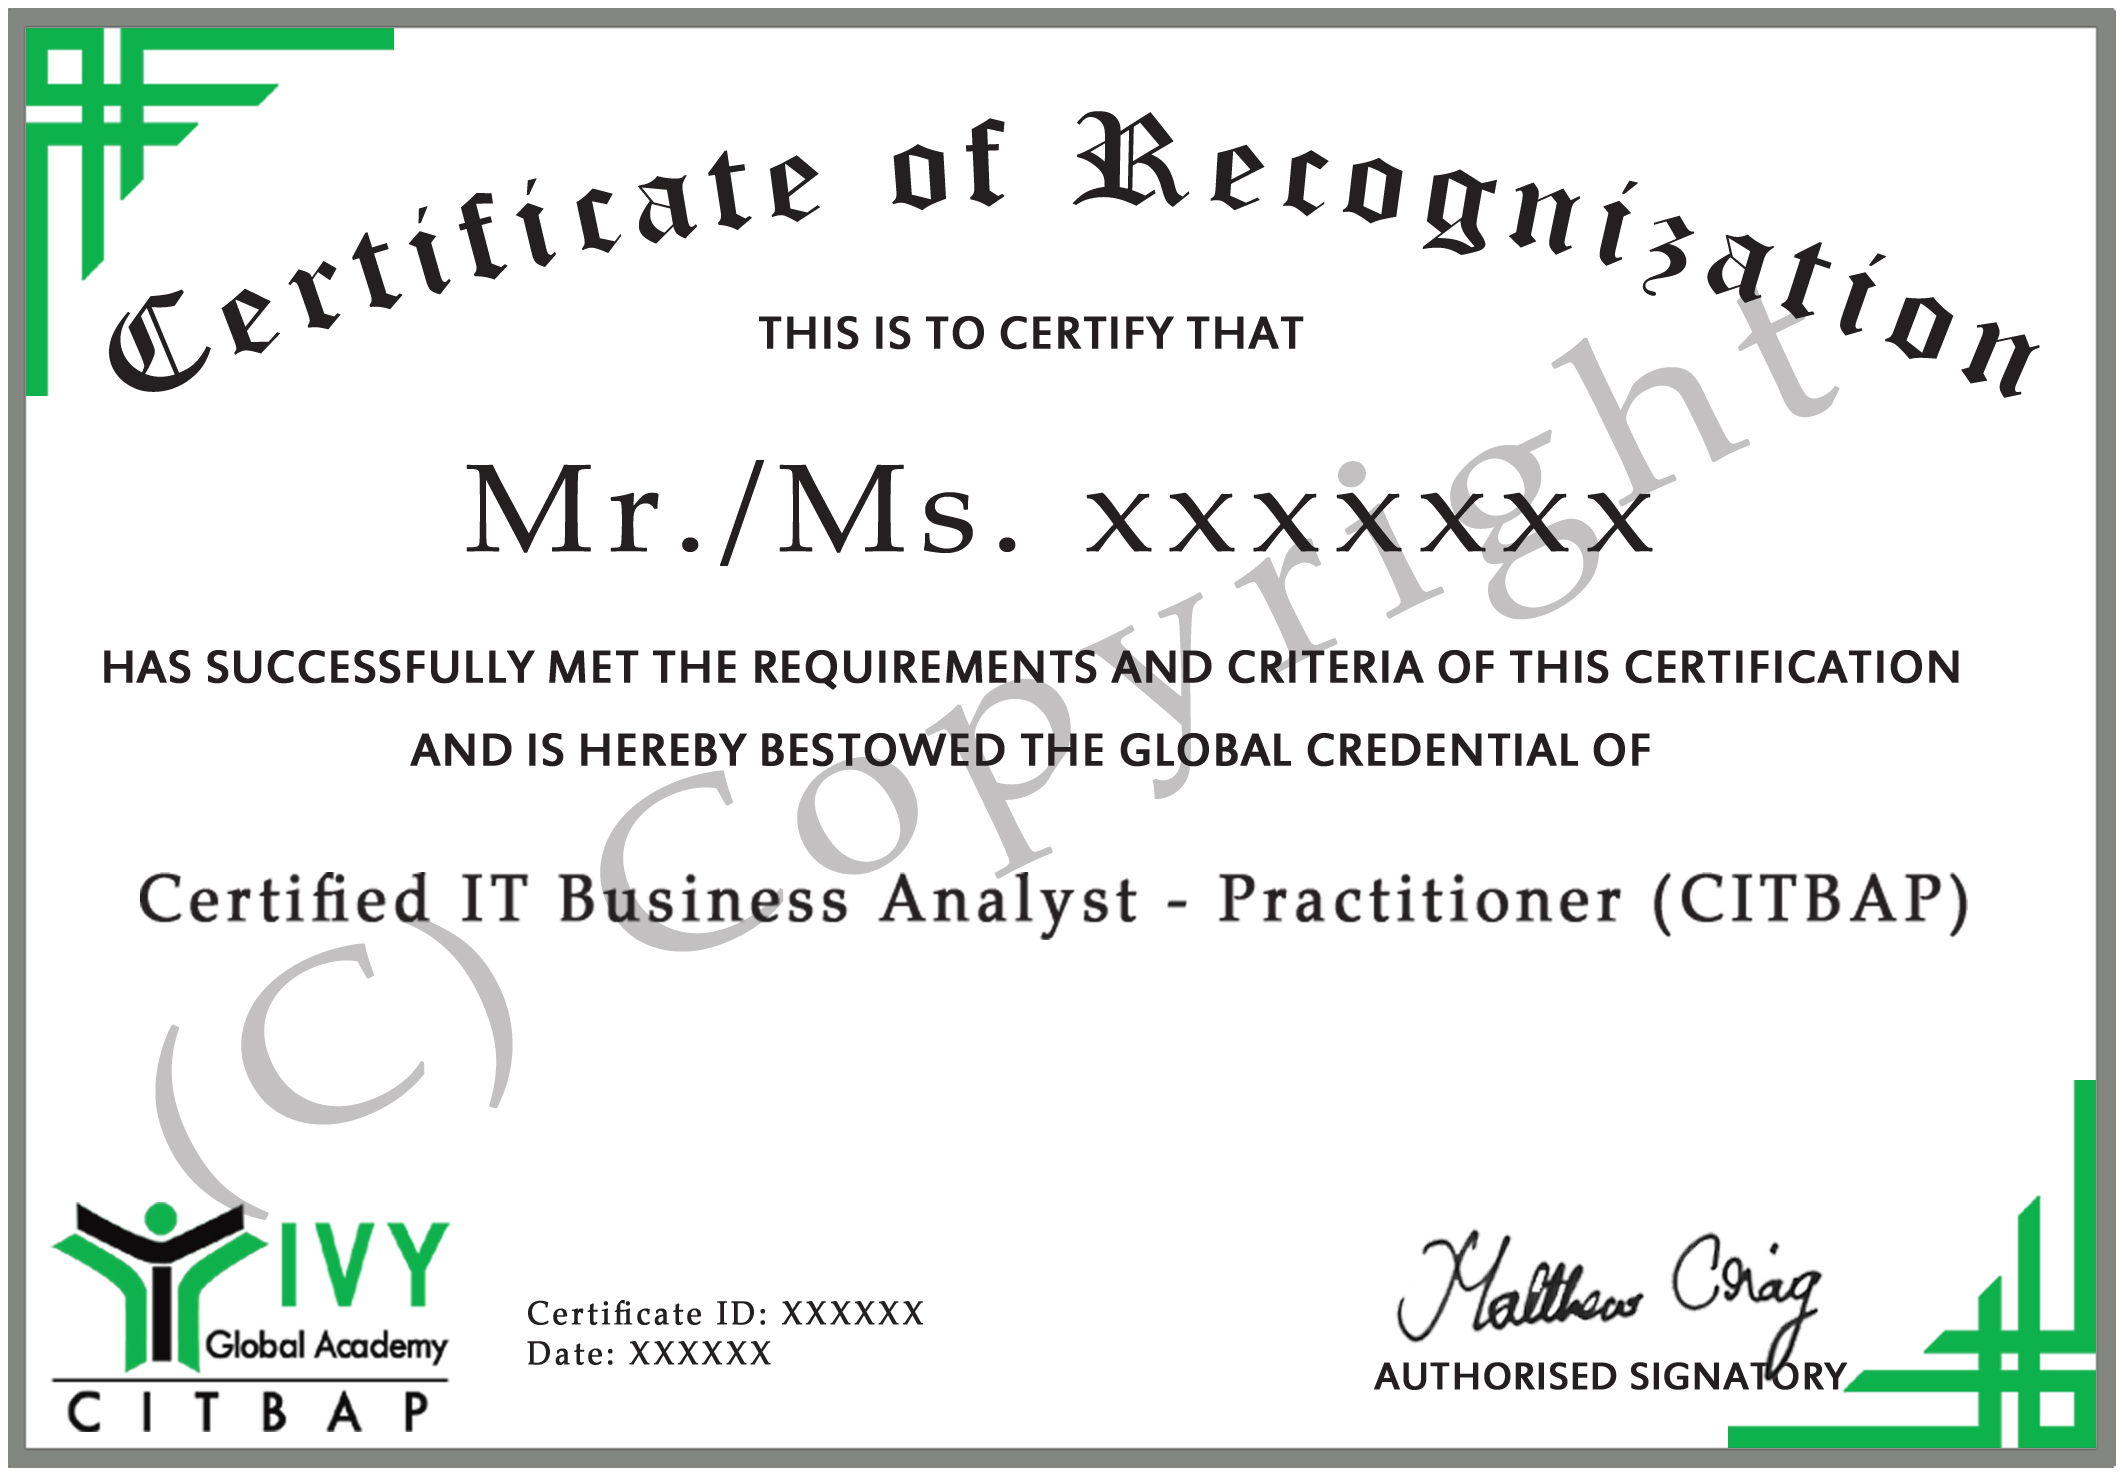 Certified IT Business Analyst Practitioner CITBAP - Business analyst documents